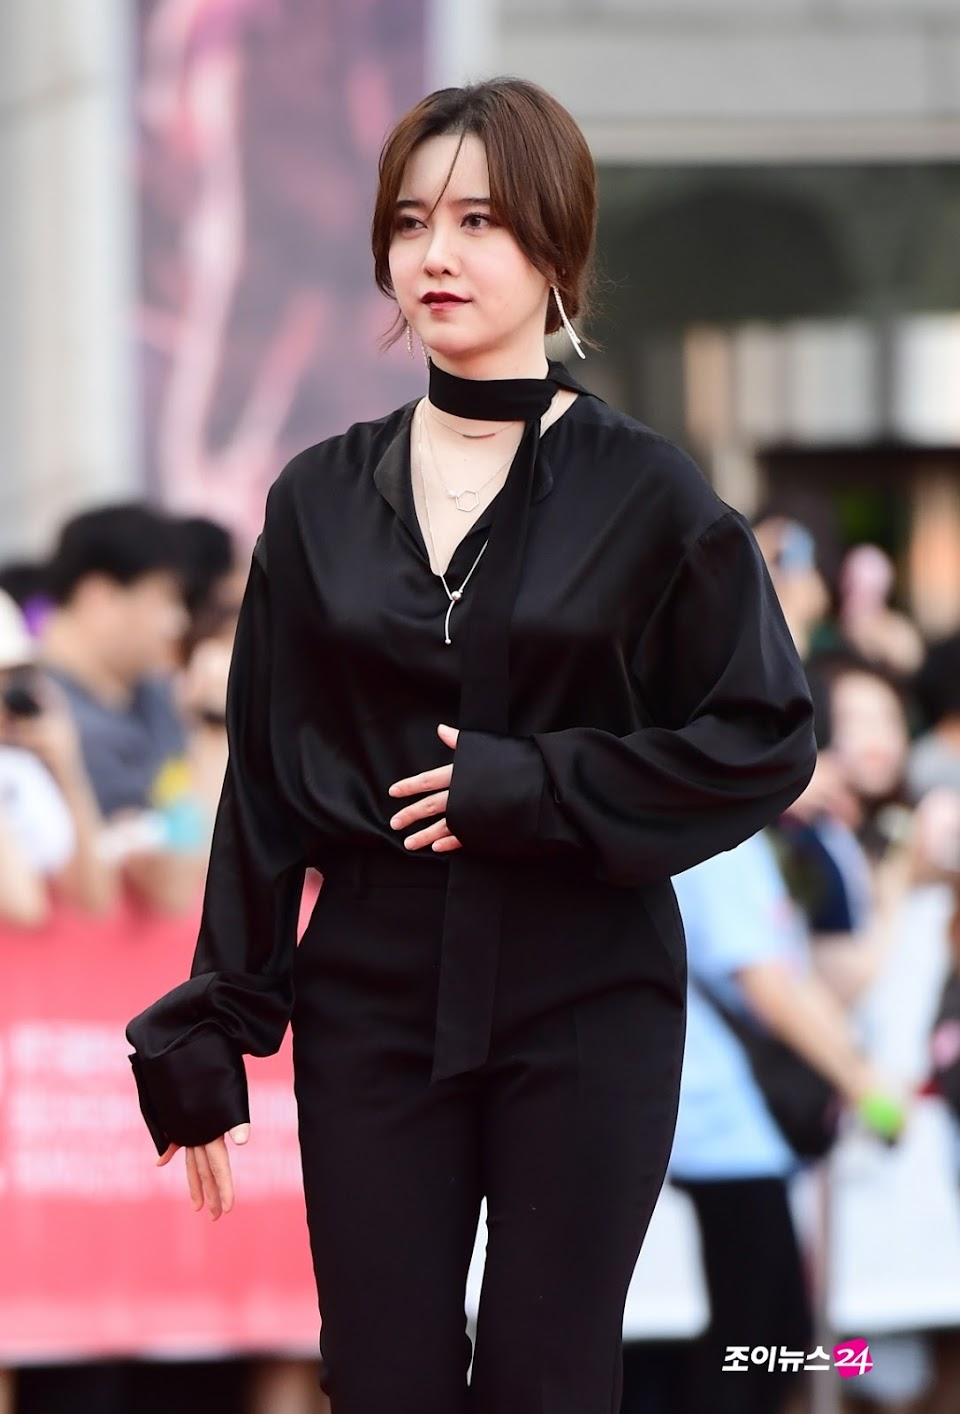 goo hye sun pregnancy surgery rumors 1